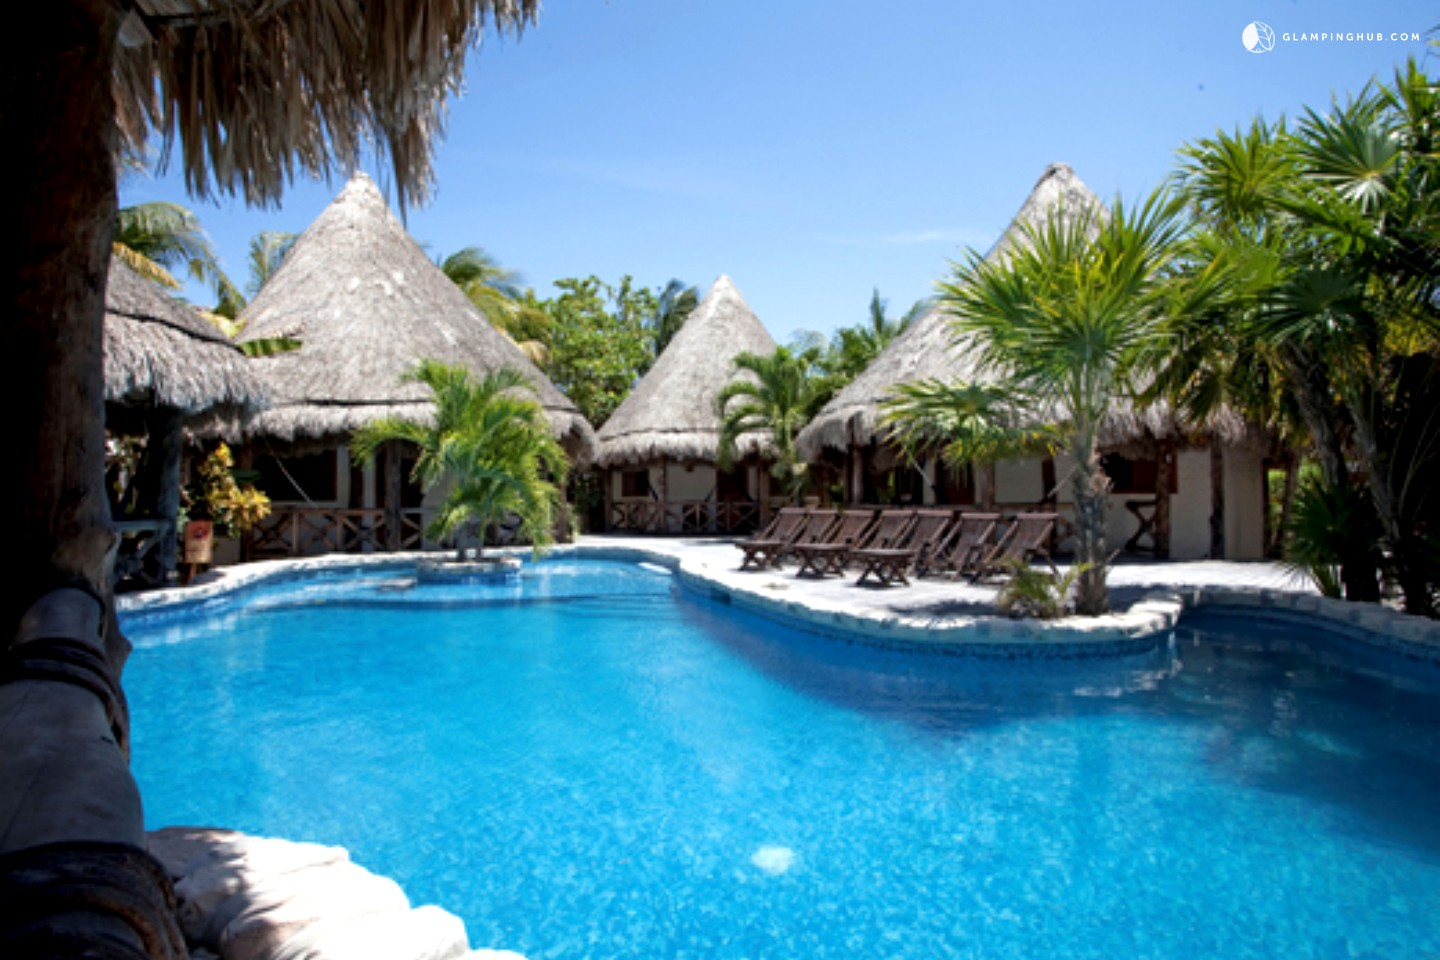 Xaloc Resort Holbox Island Mexico